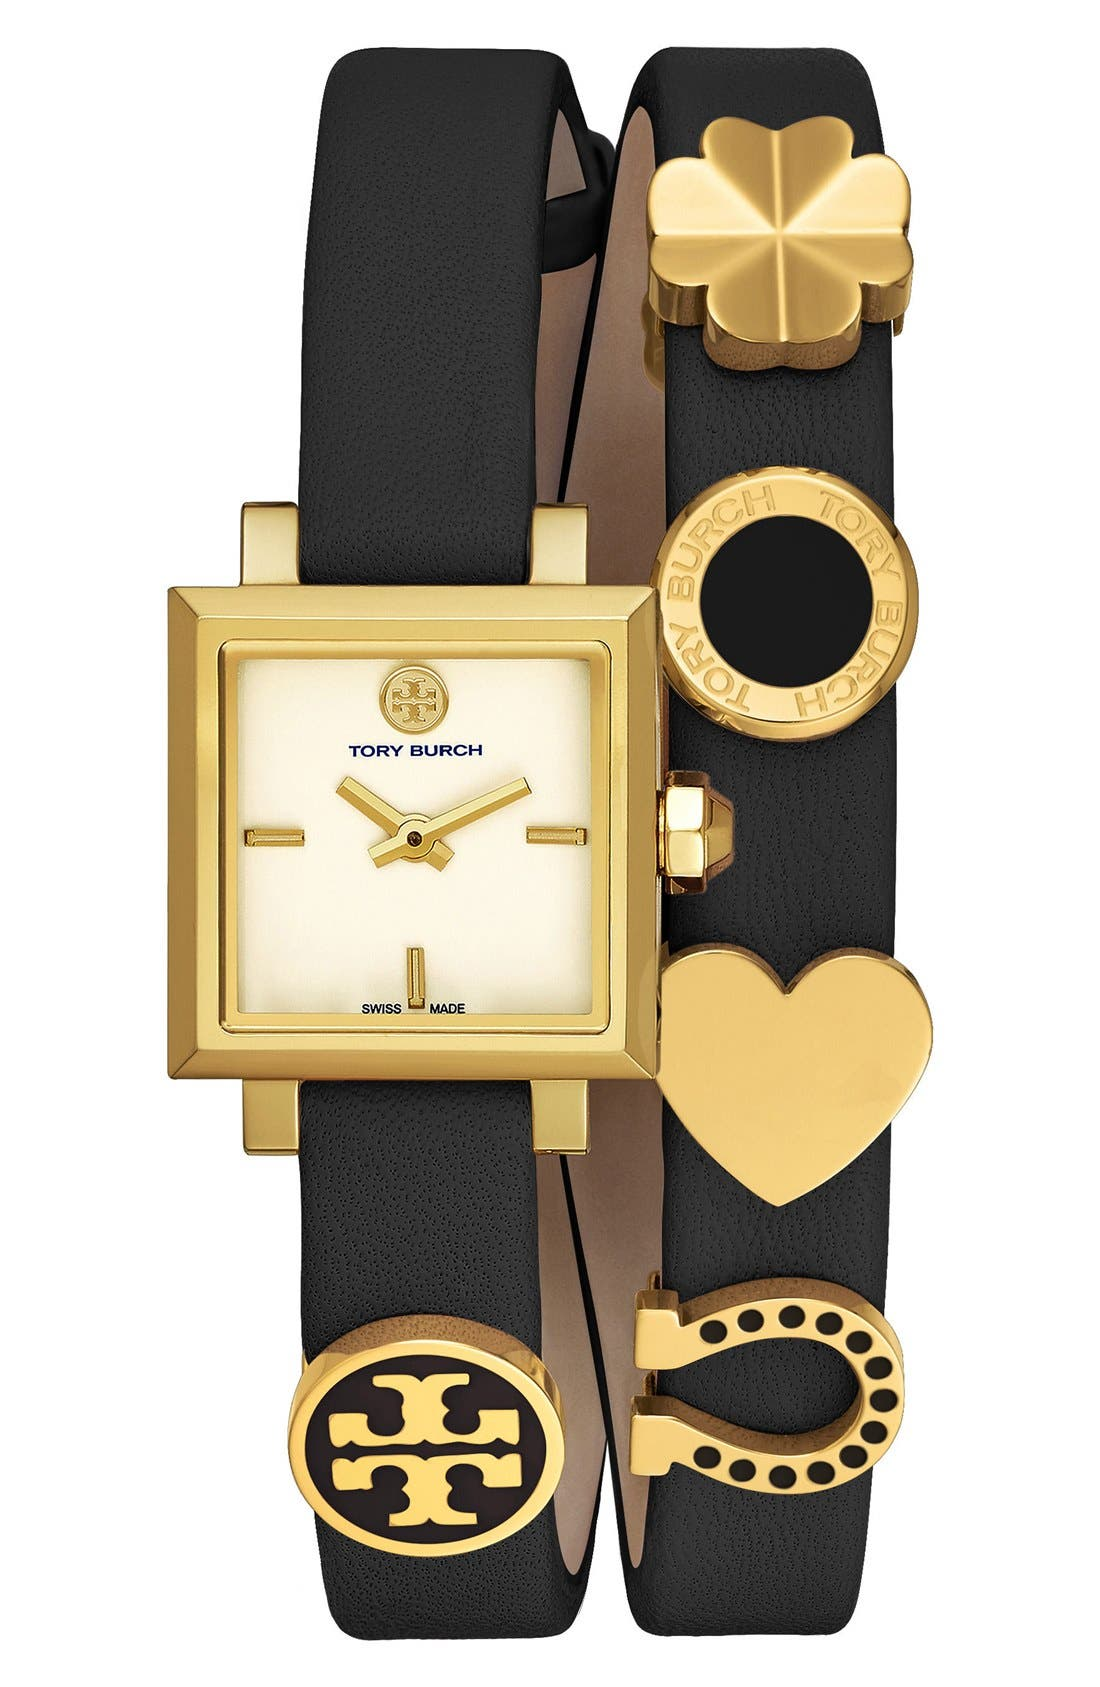 Alternate Image 1 Selected - Tory Burch 'Saucy' Double Wrap Leather Strap Watch, 25mm